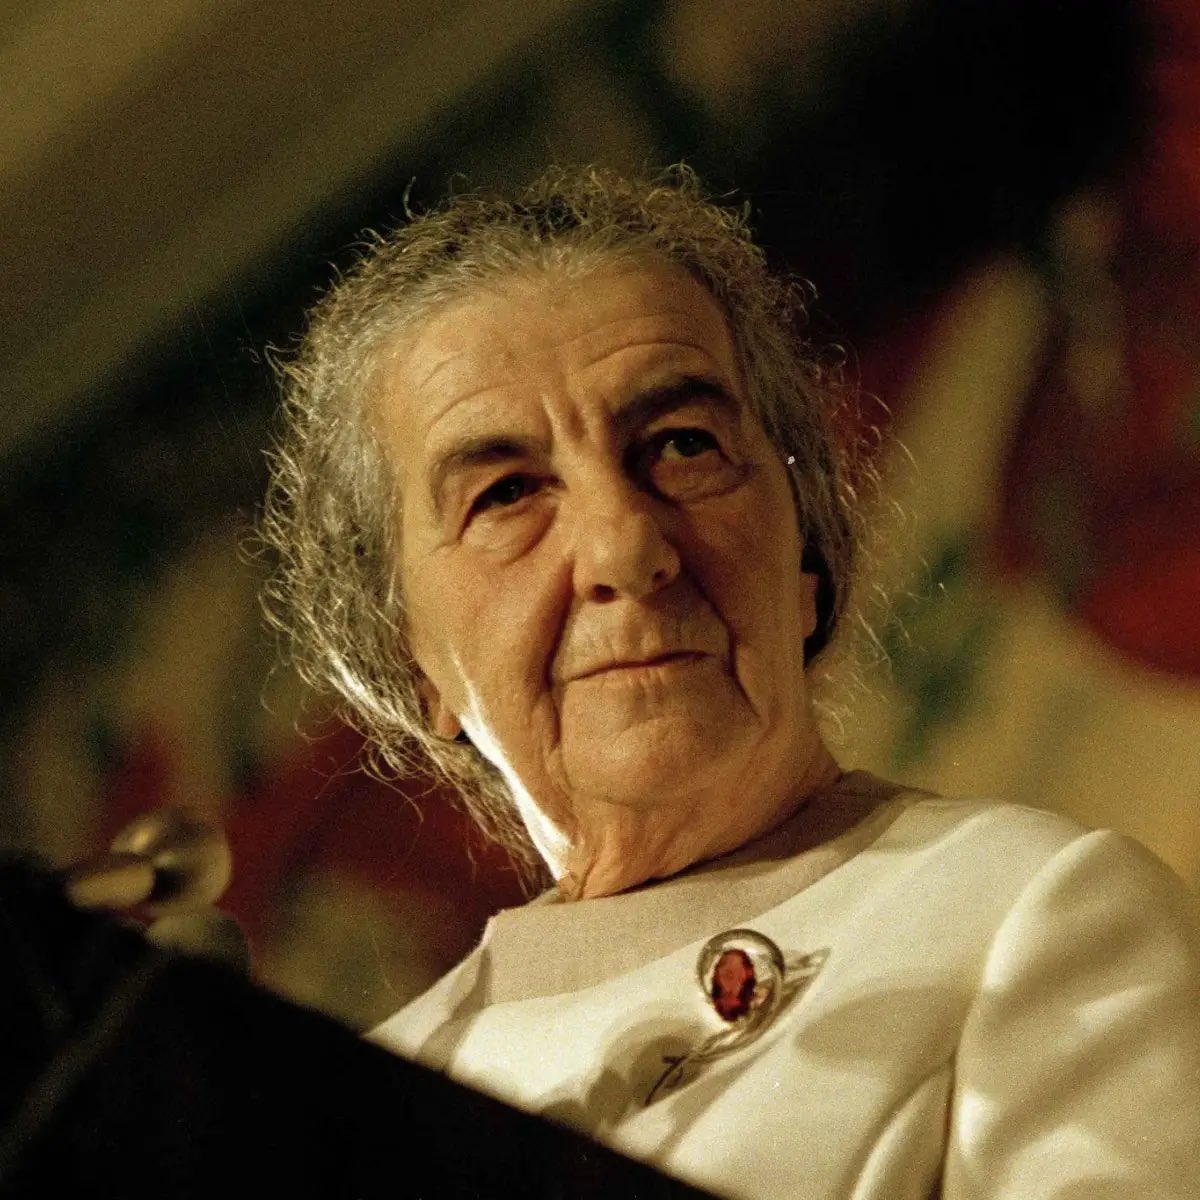 """""""One cannot and must not try to erase the past merely because it does not fit the present."""" — Golda Meir. https://t.co/O6vUuqZm2E"""